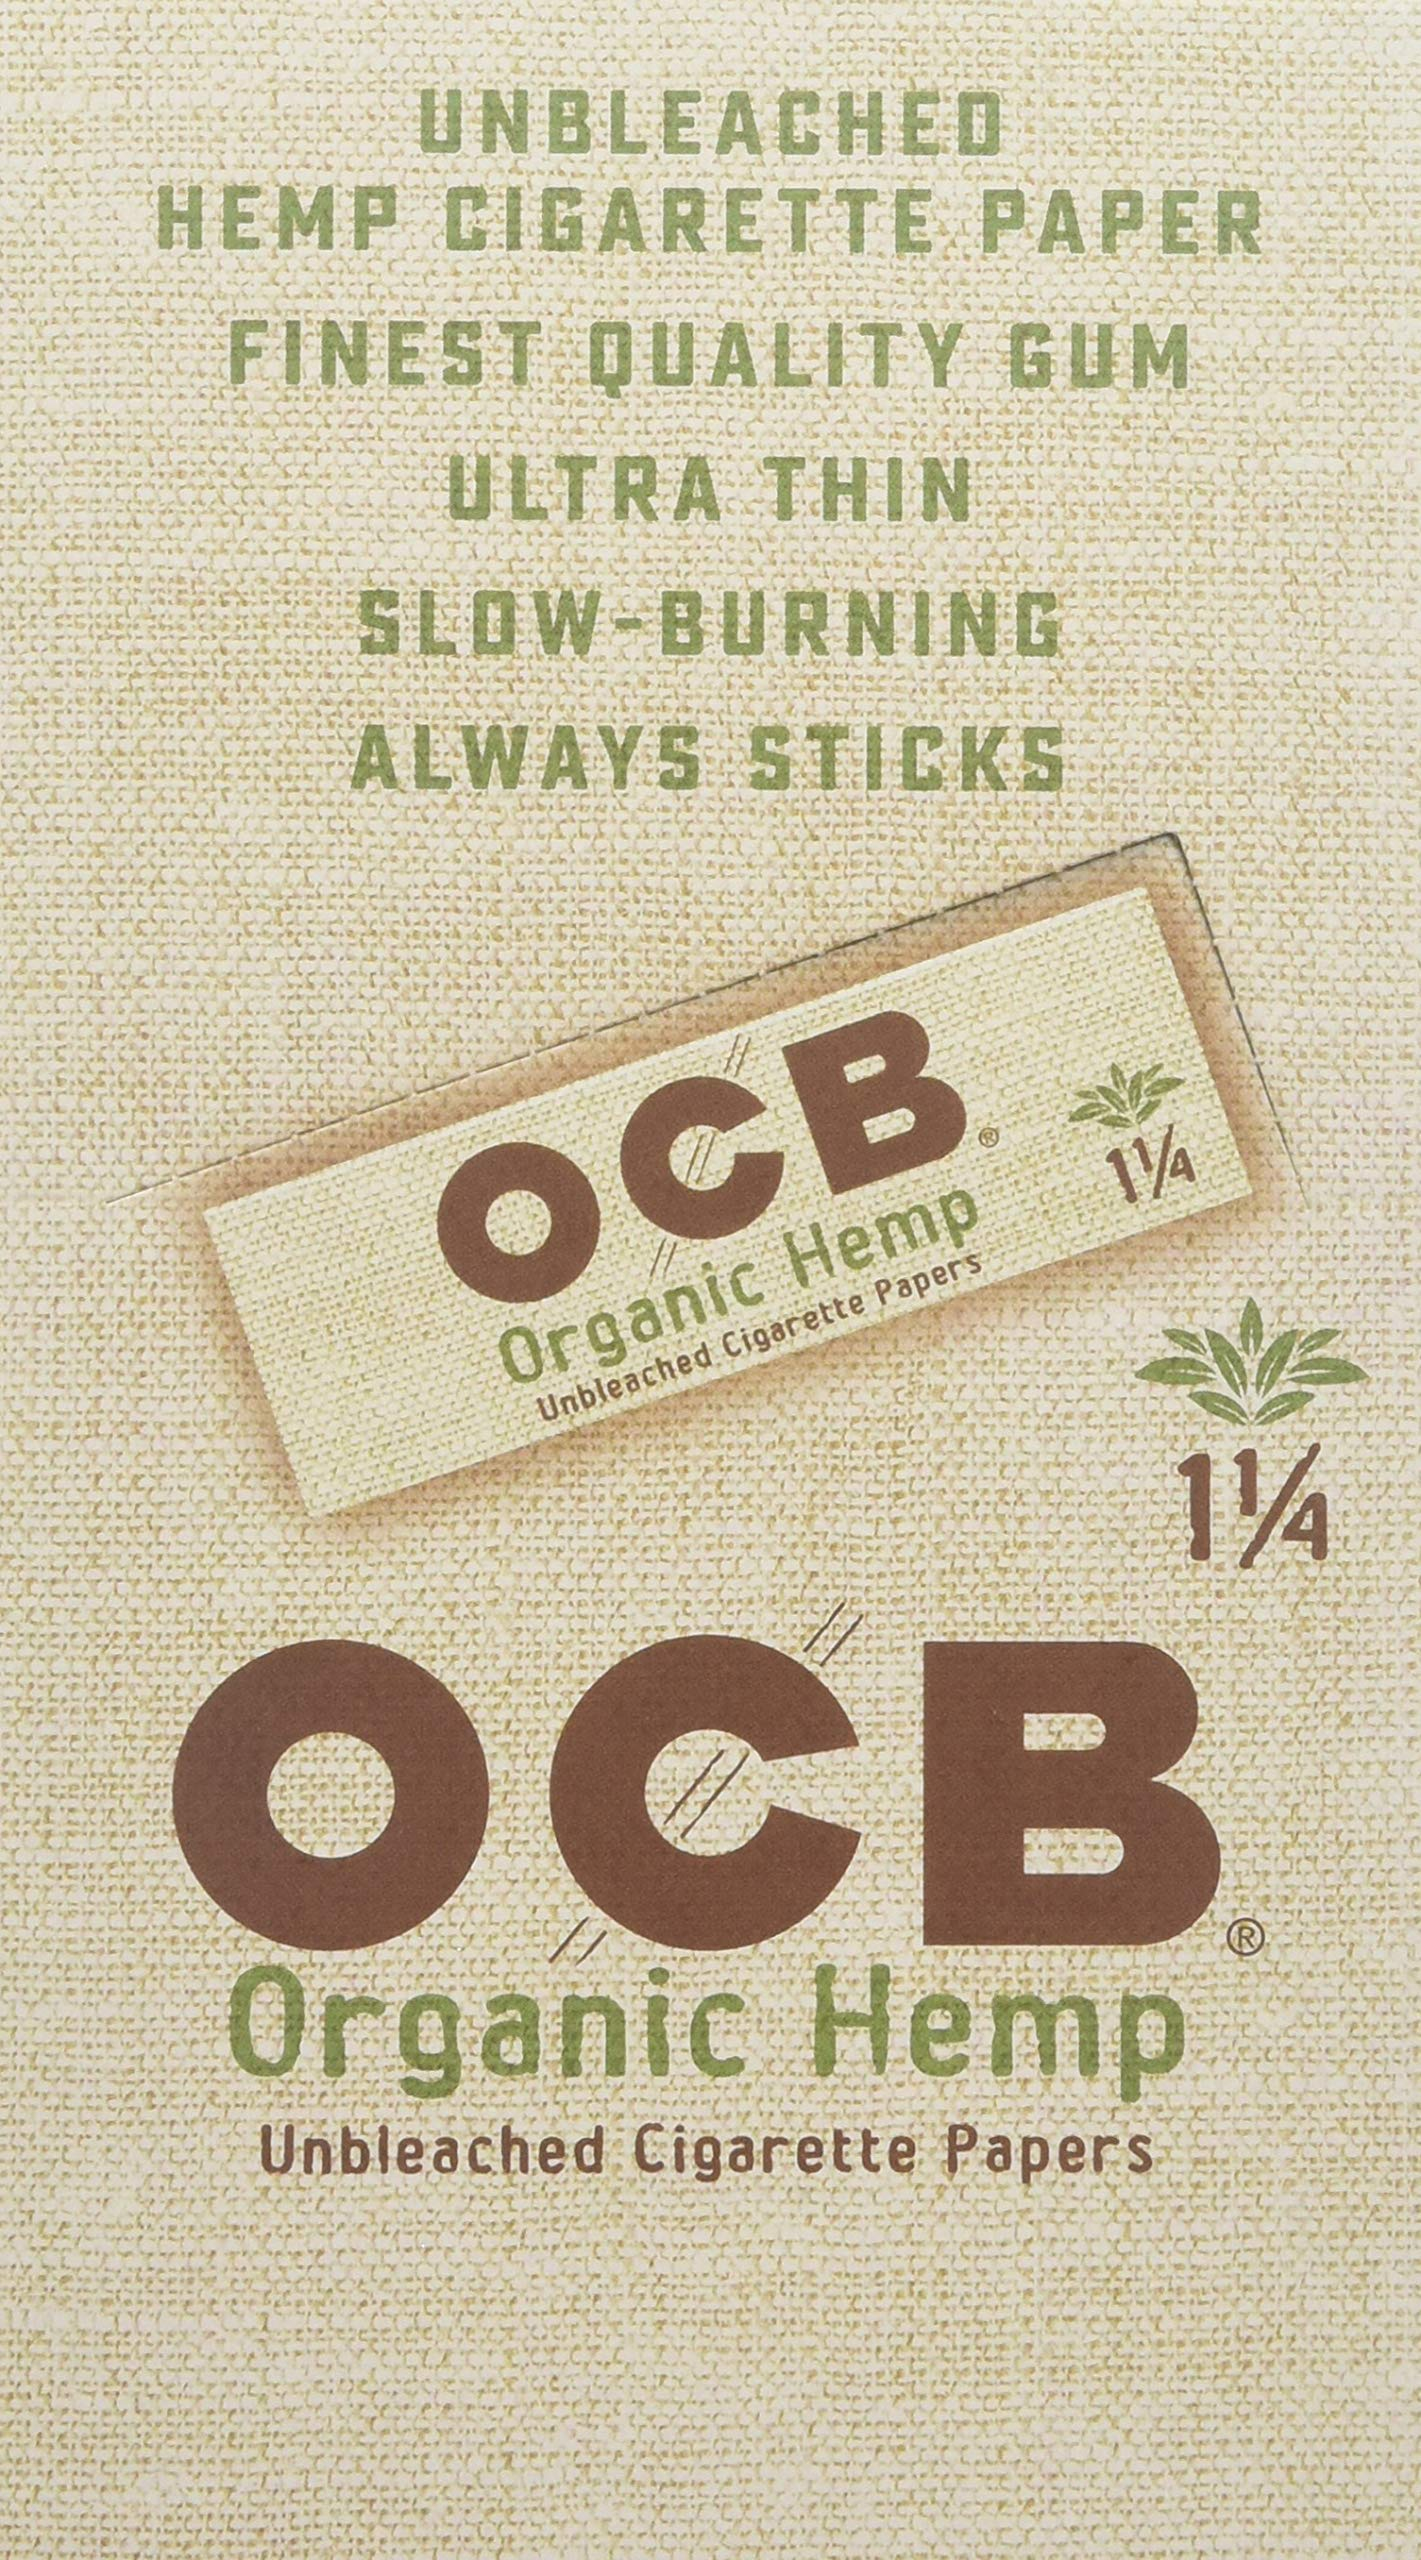 OCB Organic Hemp Unbleached Rolling Papers 1 1/4 UNFLAVORED Flavor Pack of 24